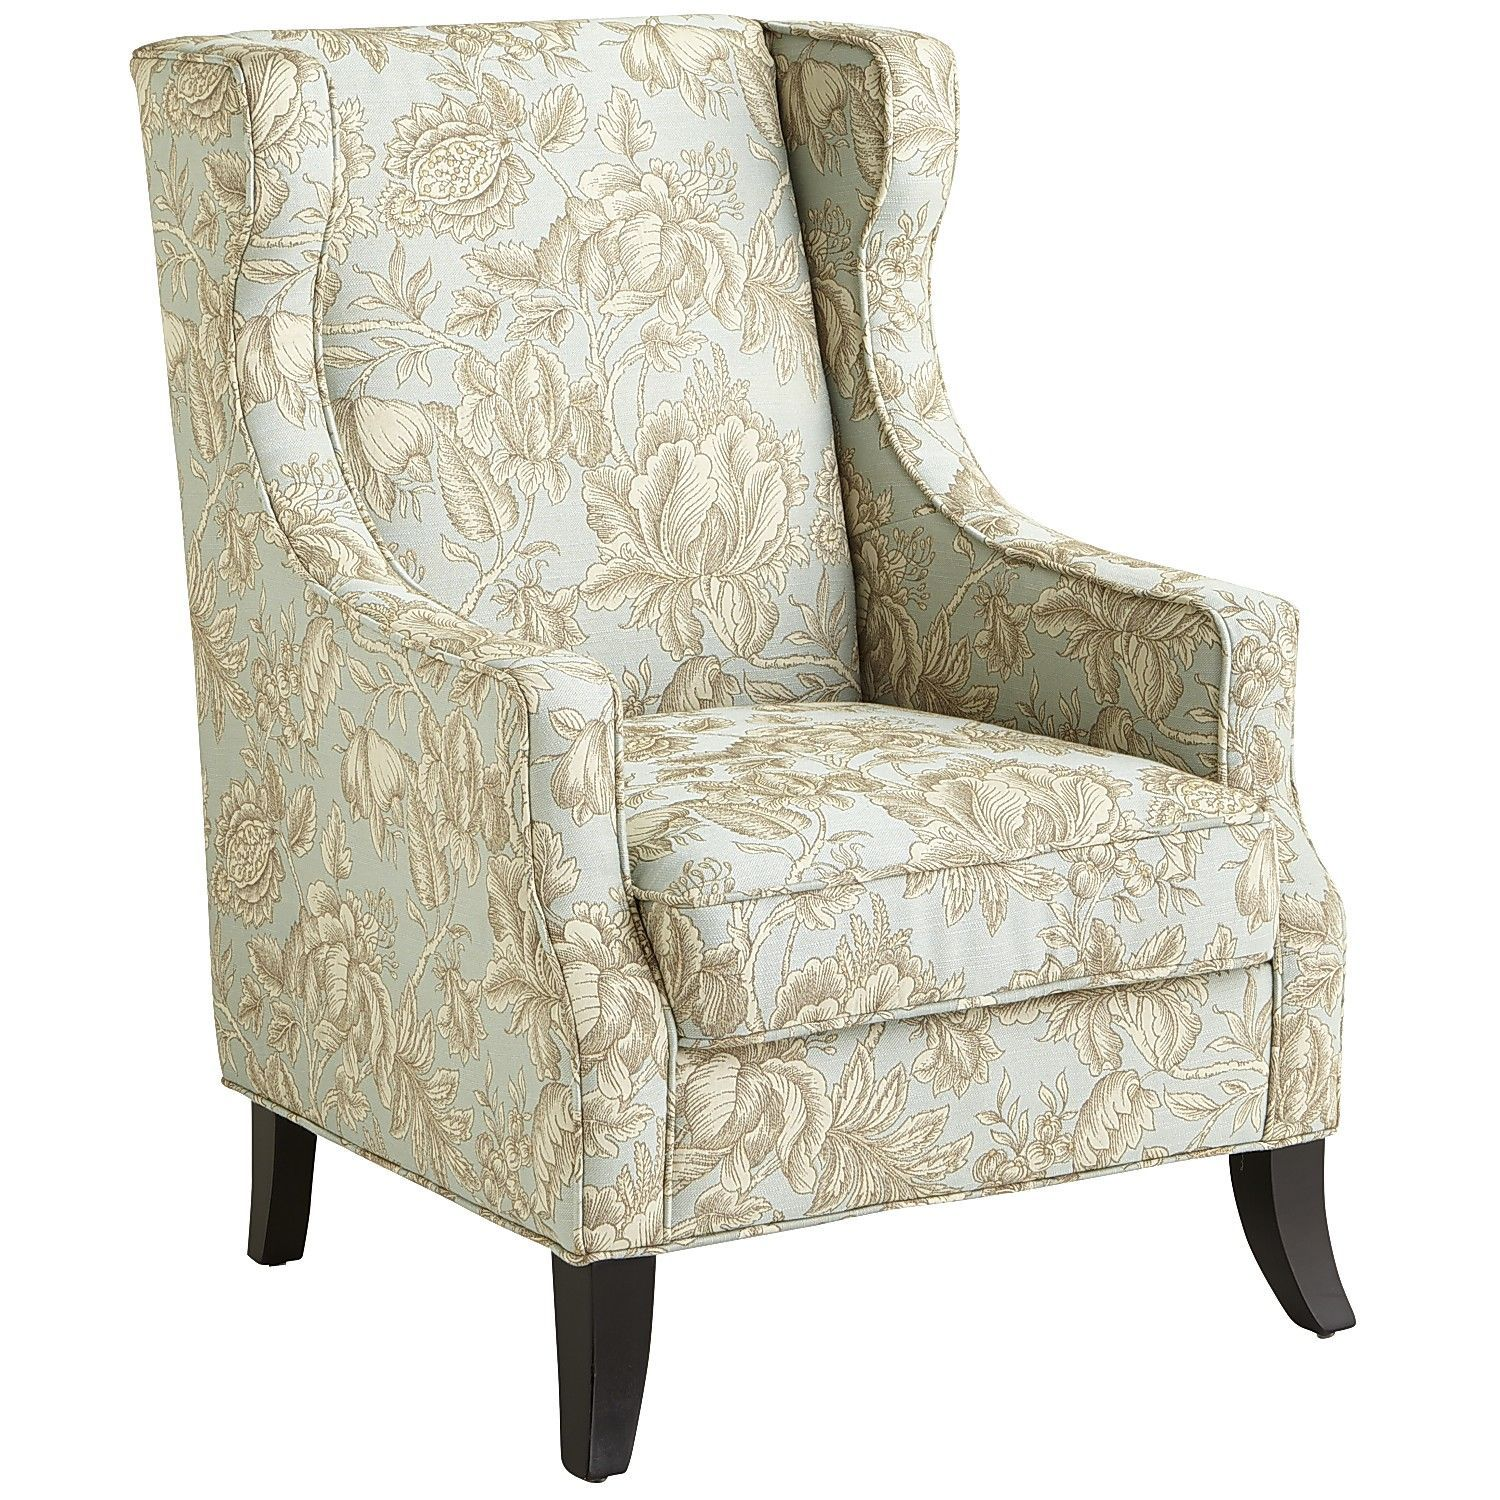 Alec Blue Floral Wing Chair Living rooms, Room and Bedrooms